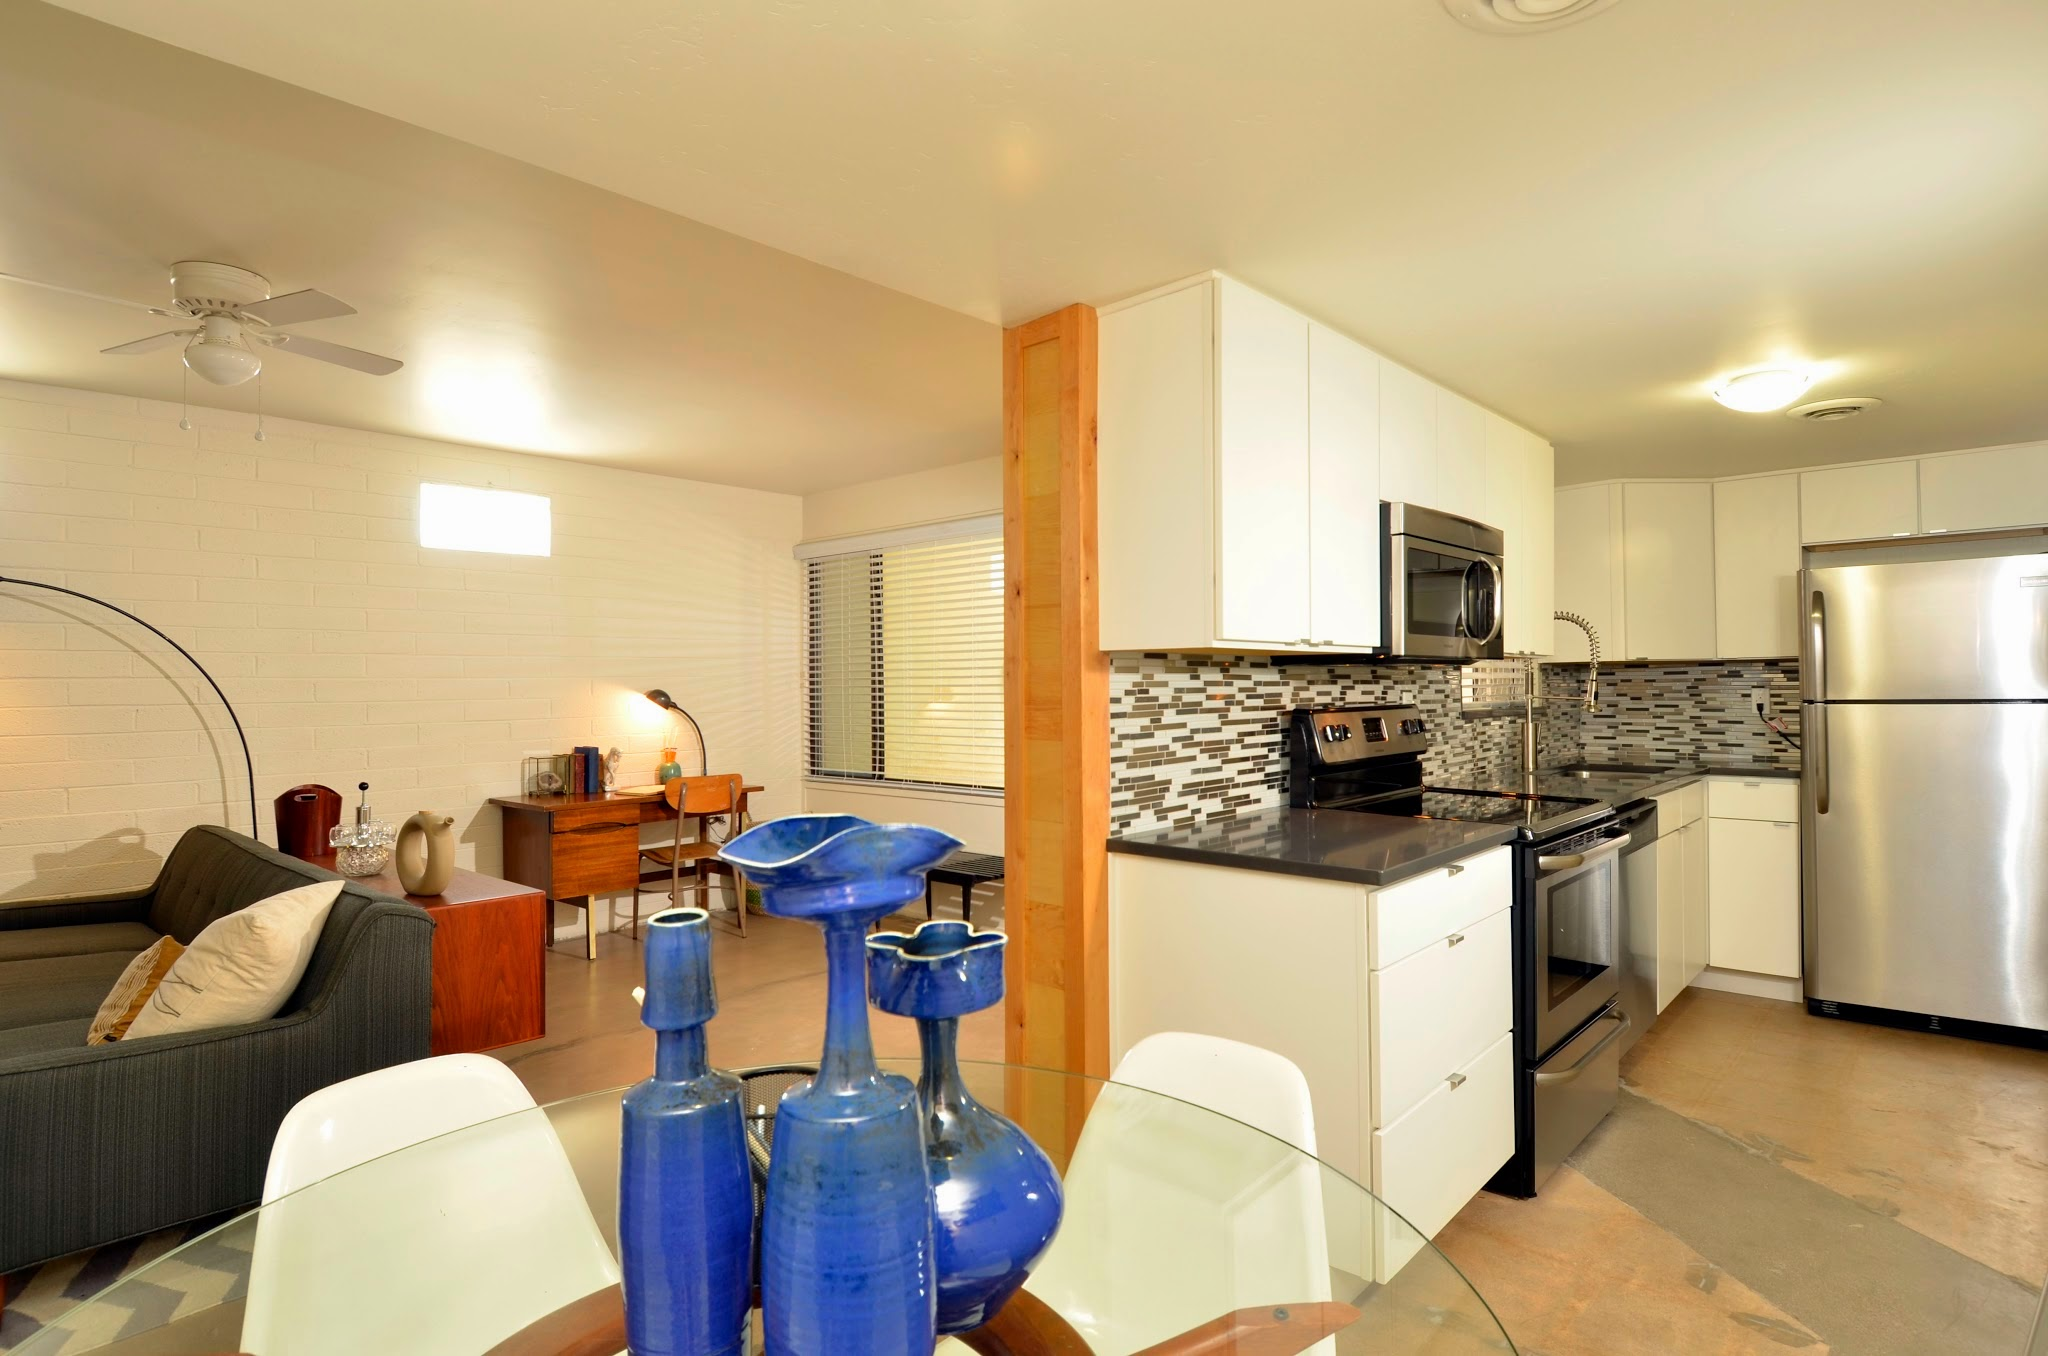 Modern Apartment Living at The Winfield of Scottsdale Apartments in Scottsdale, Arizona